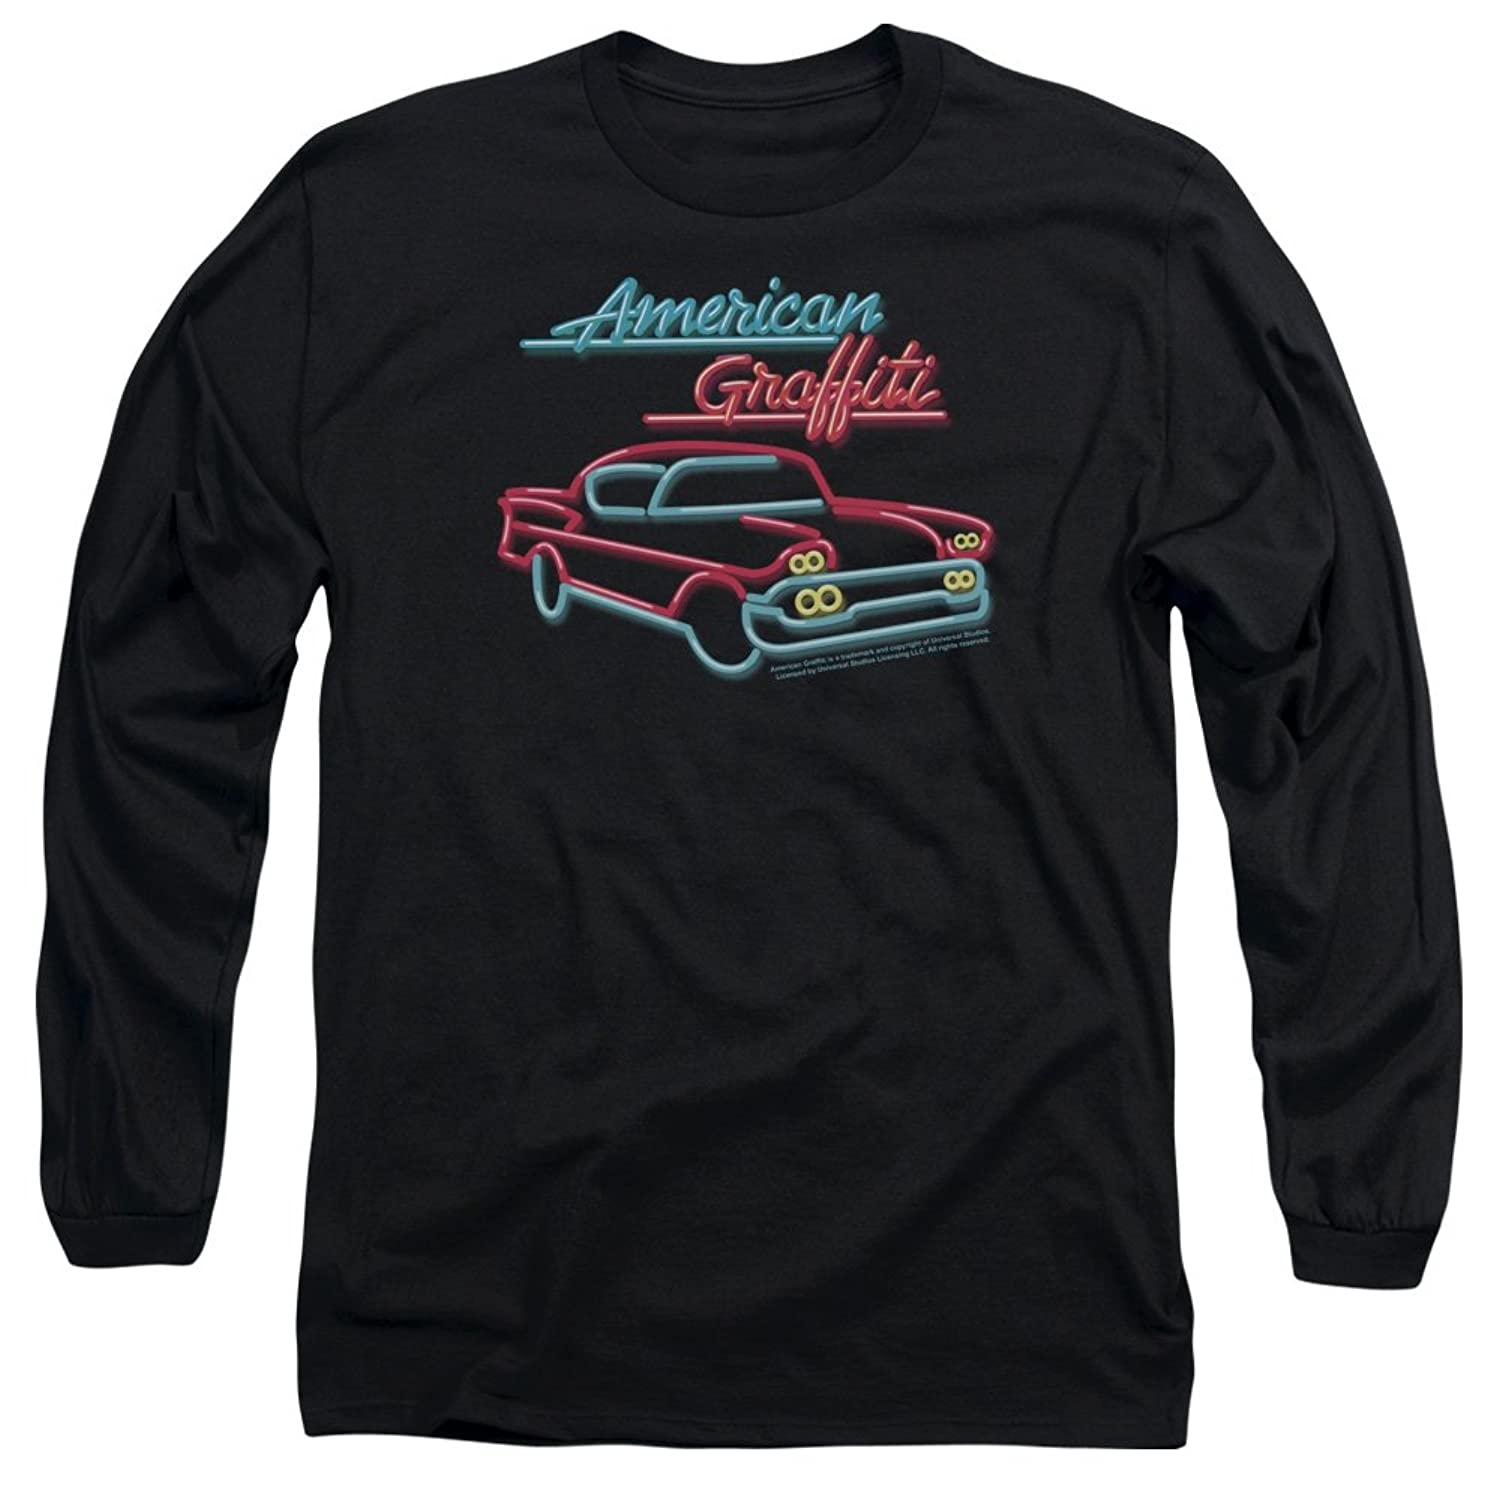 American Grafitti - Mens Neon Long Sleeve T-Shirt